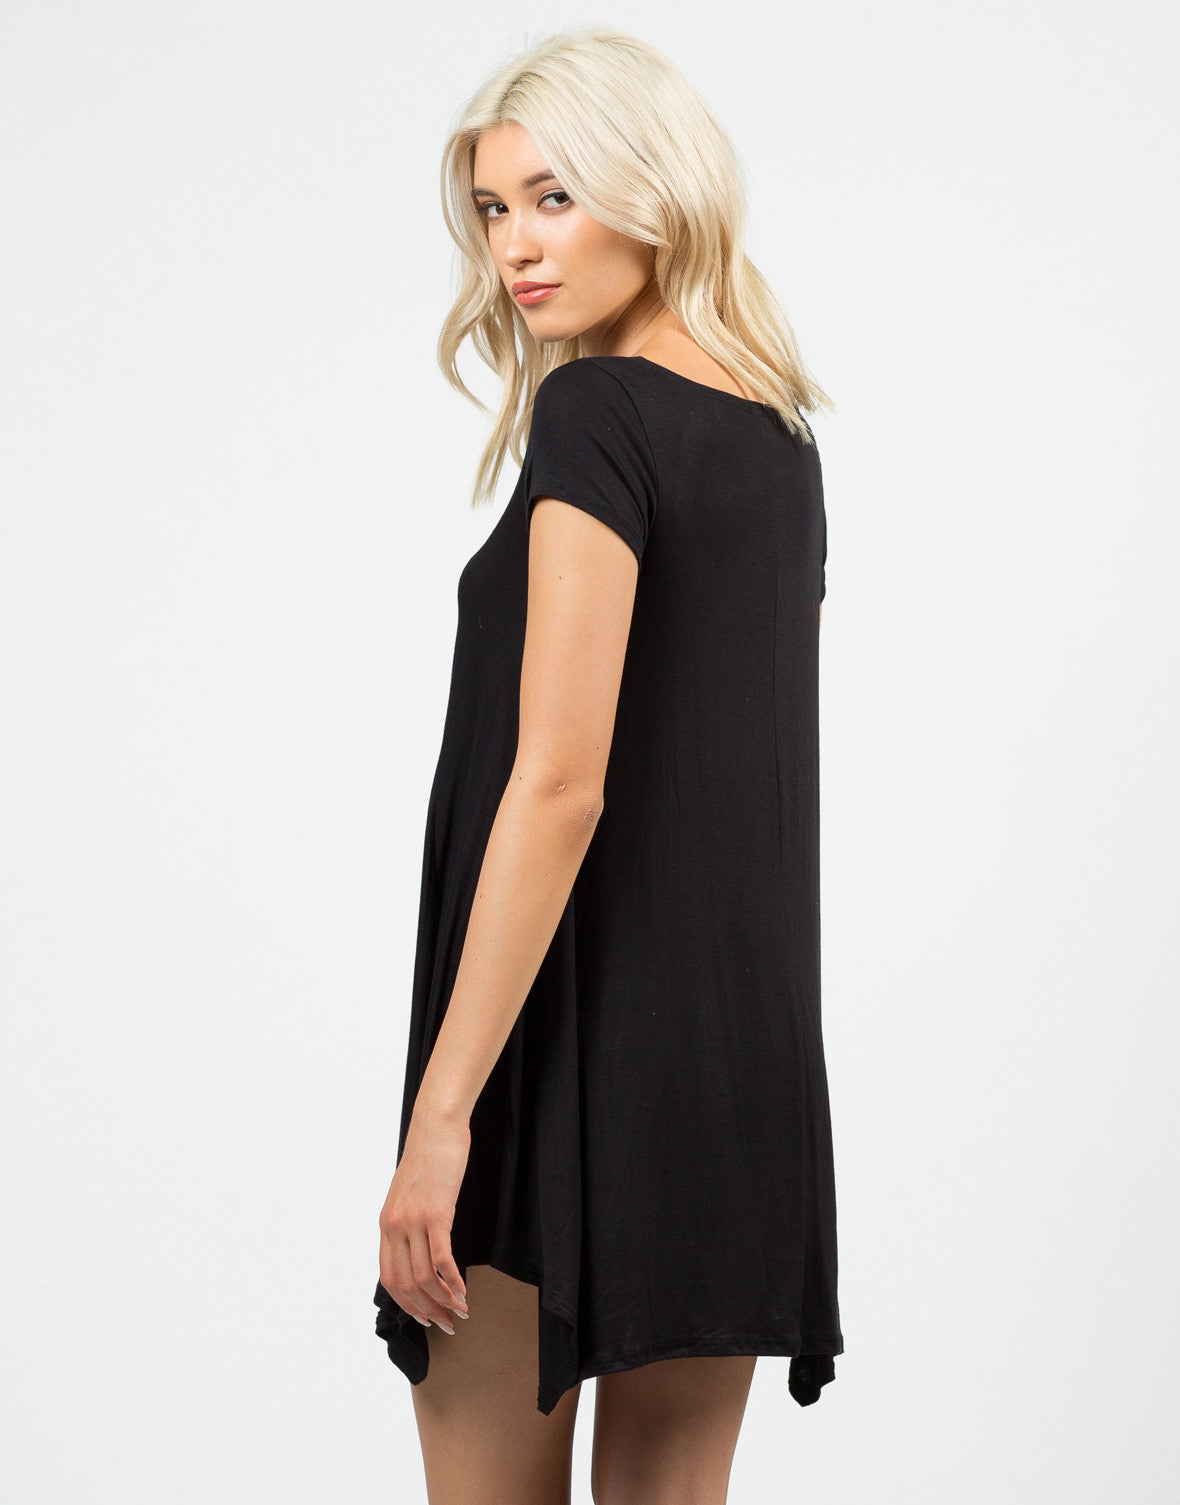 Back View of Basic Tunic Top